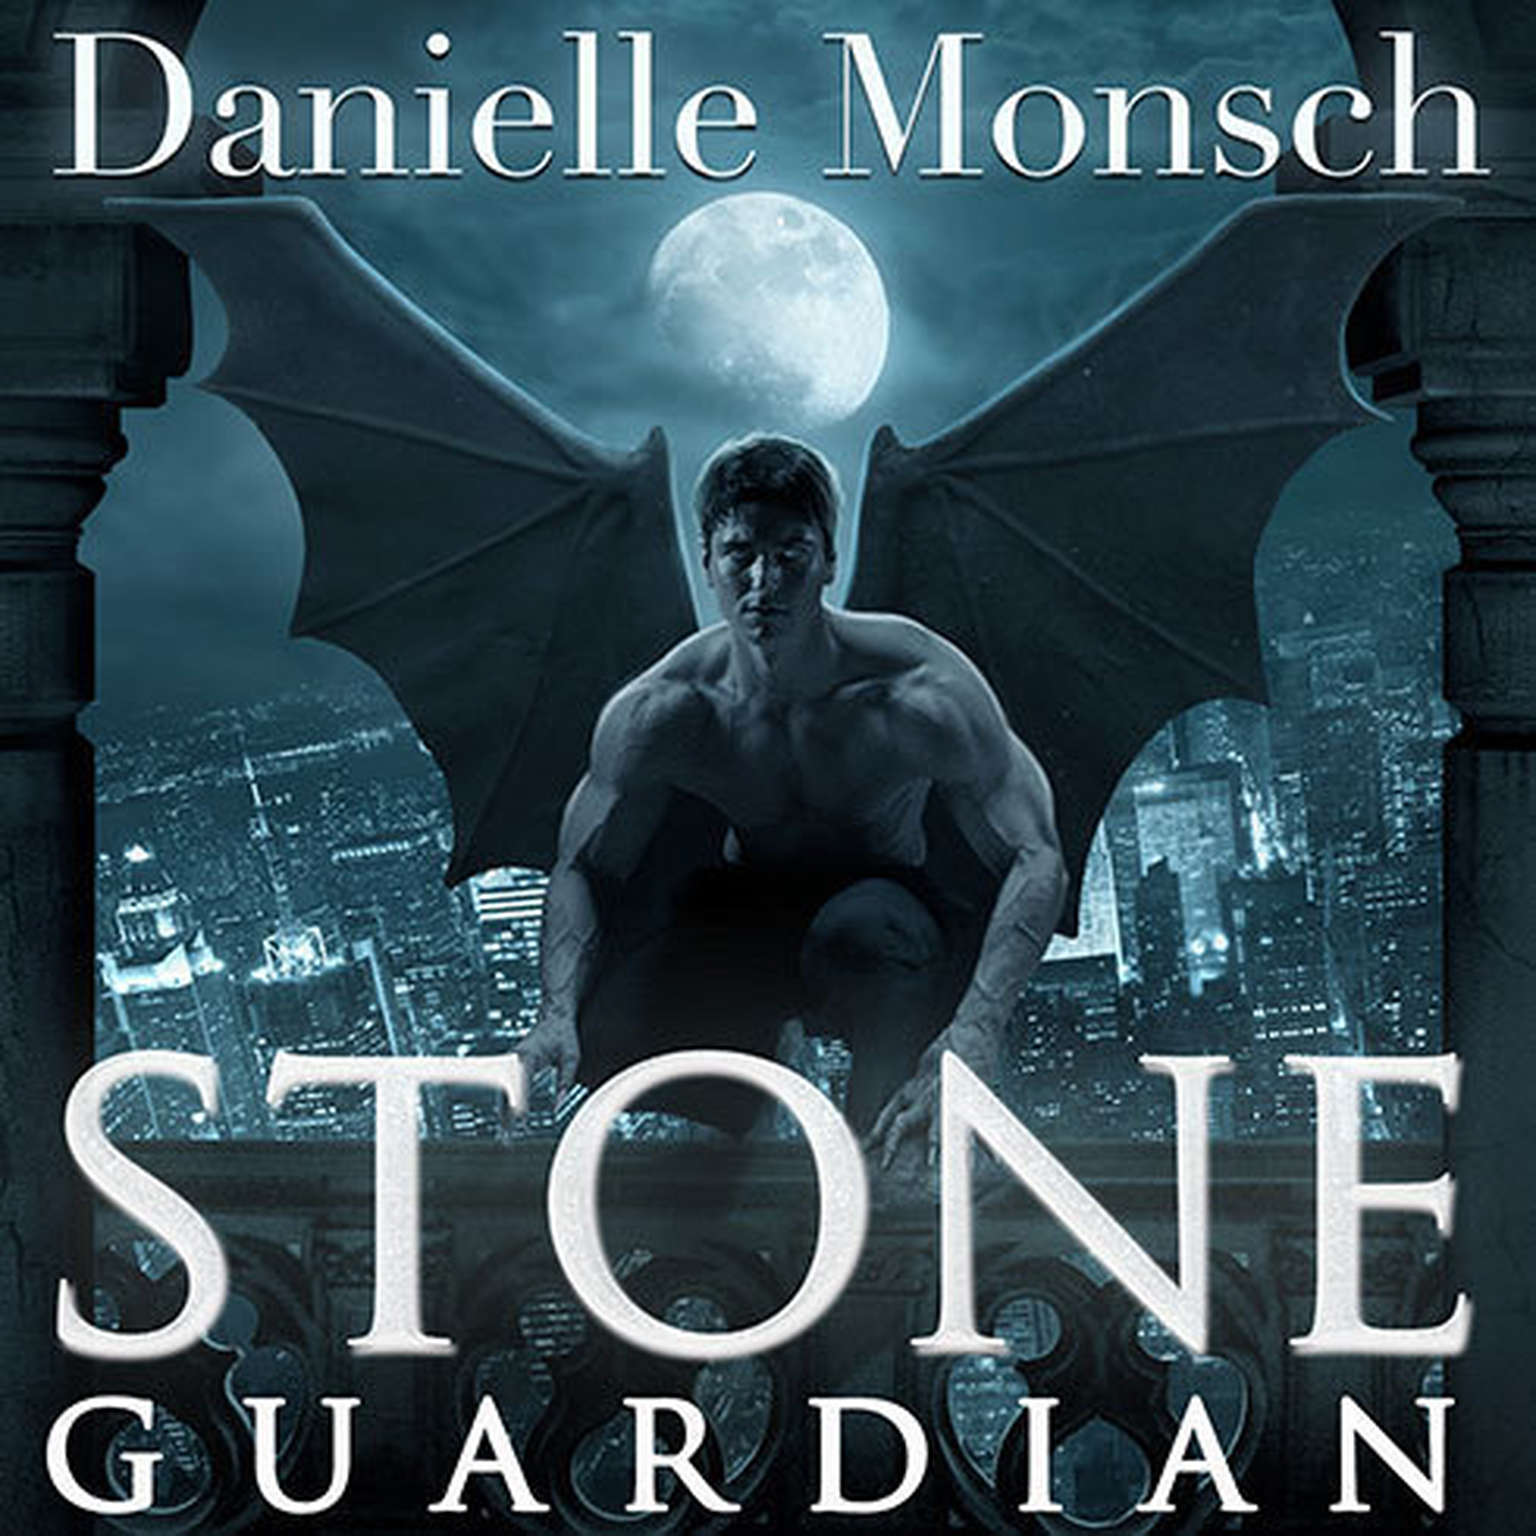 Printable Stone Guardian Audiobook Cover Art